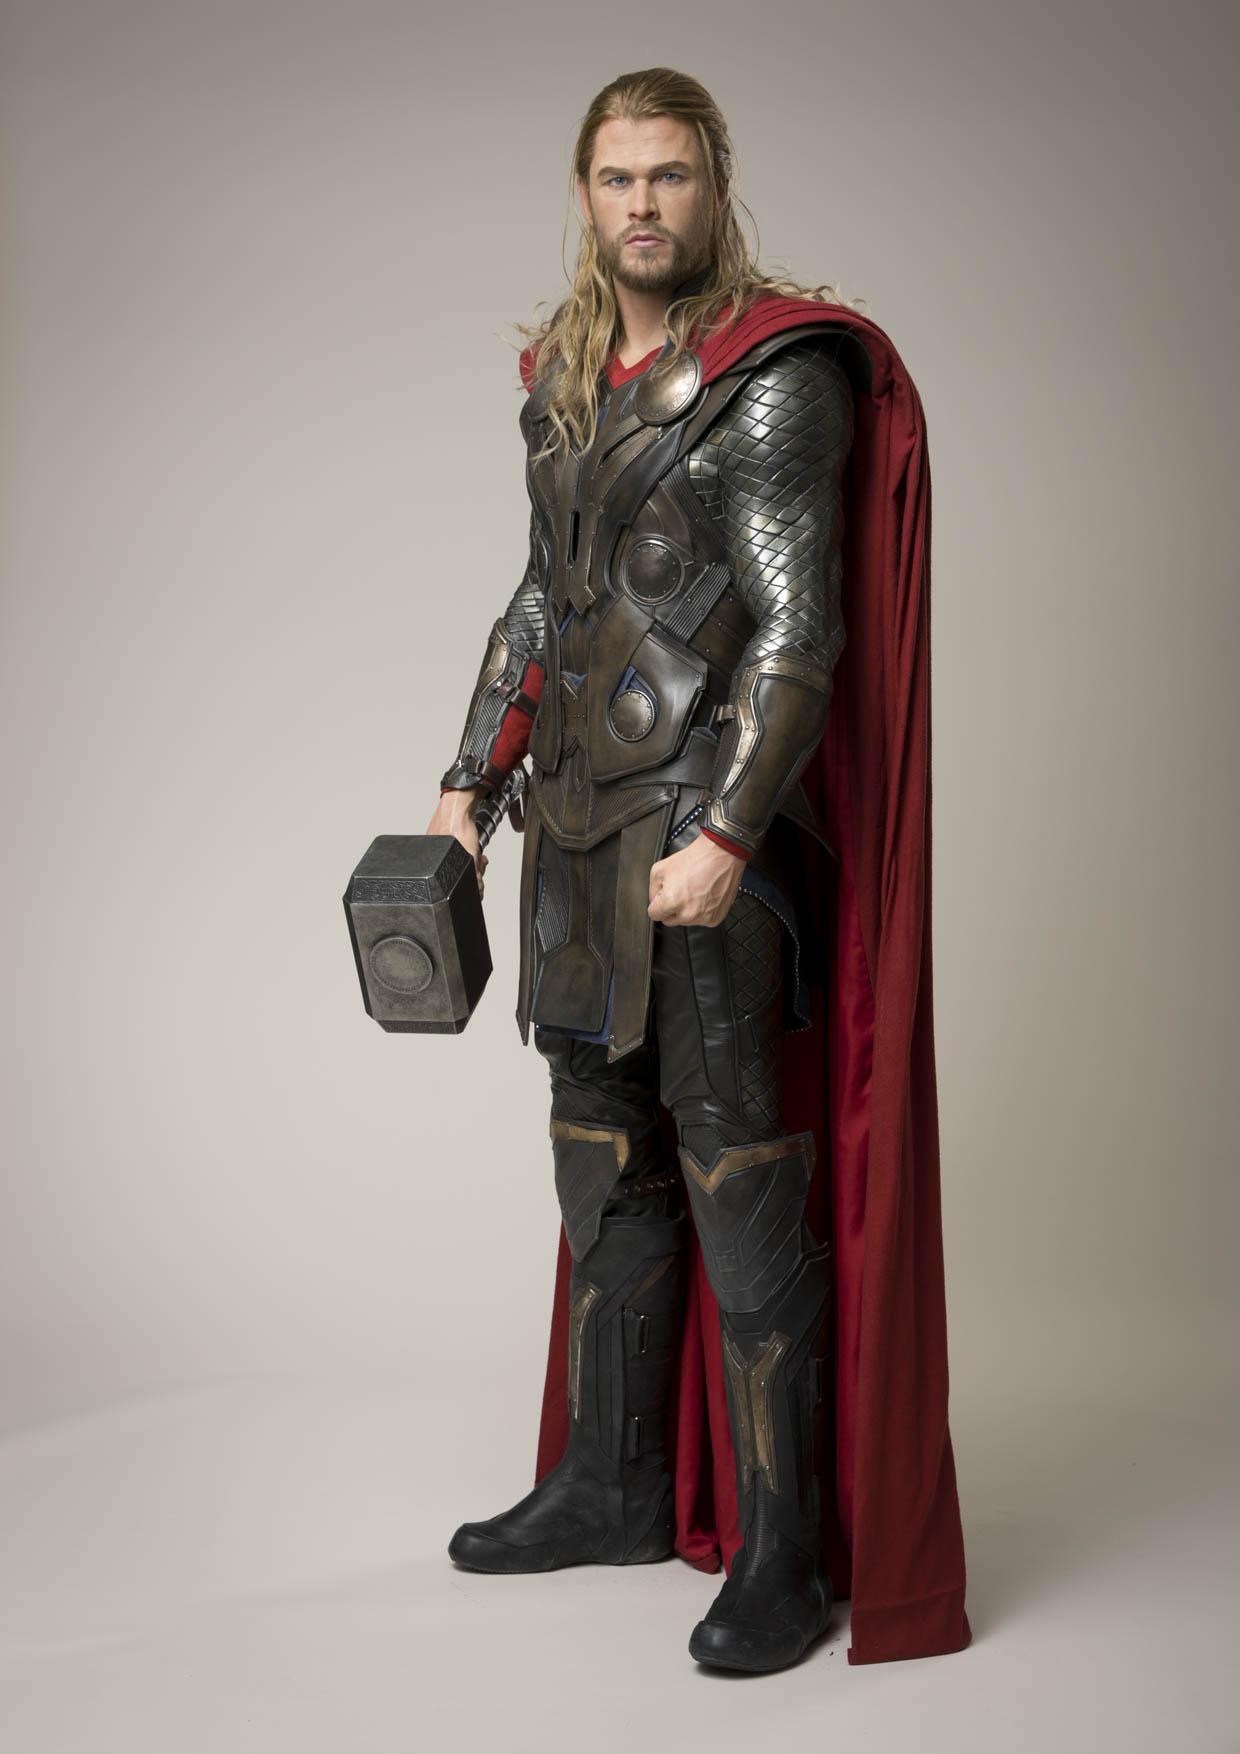 Dsc7120 Chris Hemsworth As Thor Mta 2016